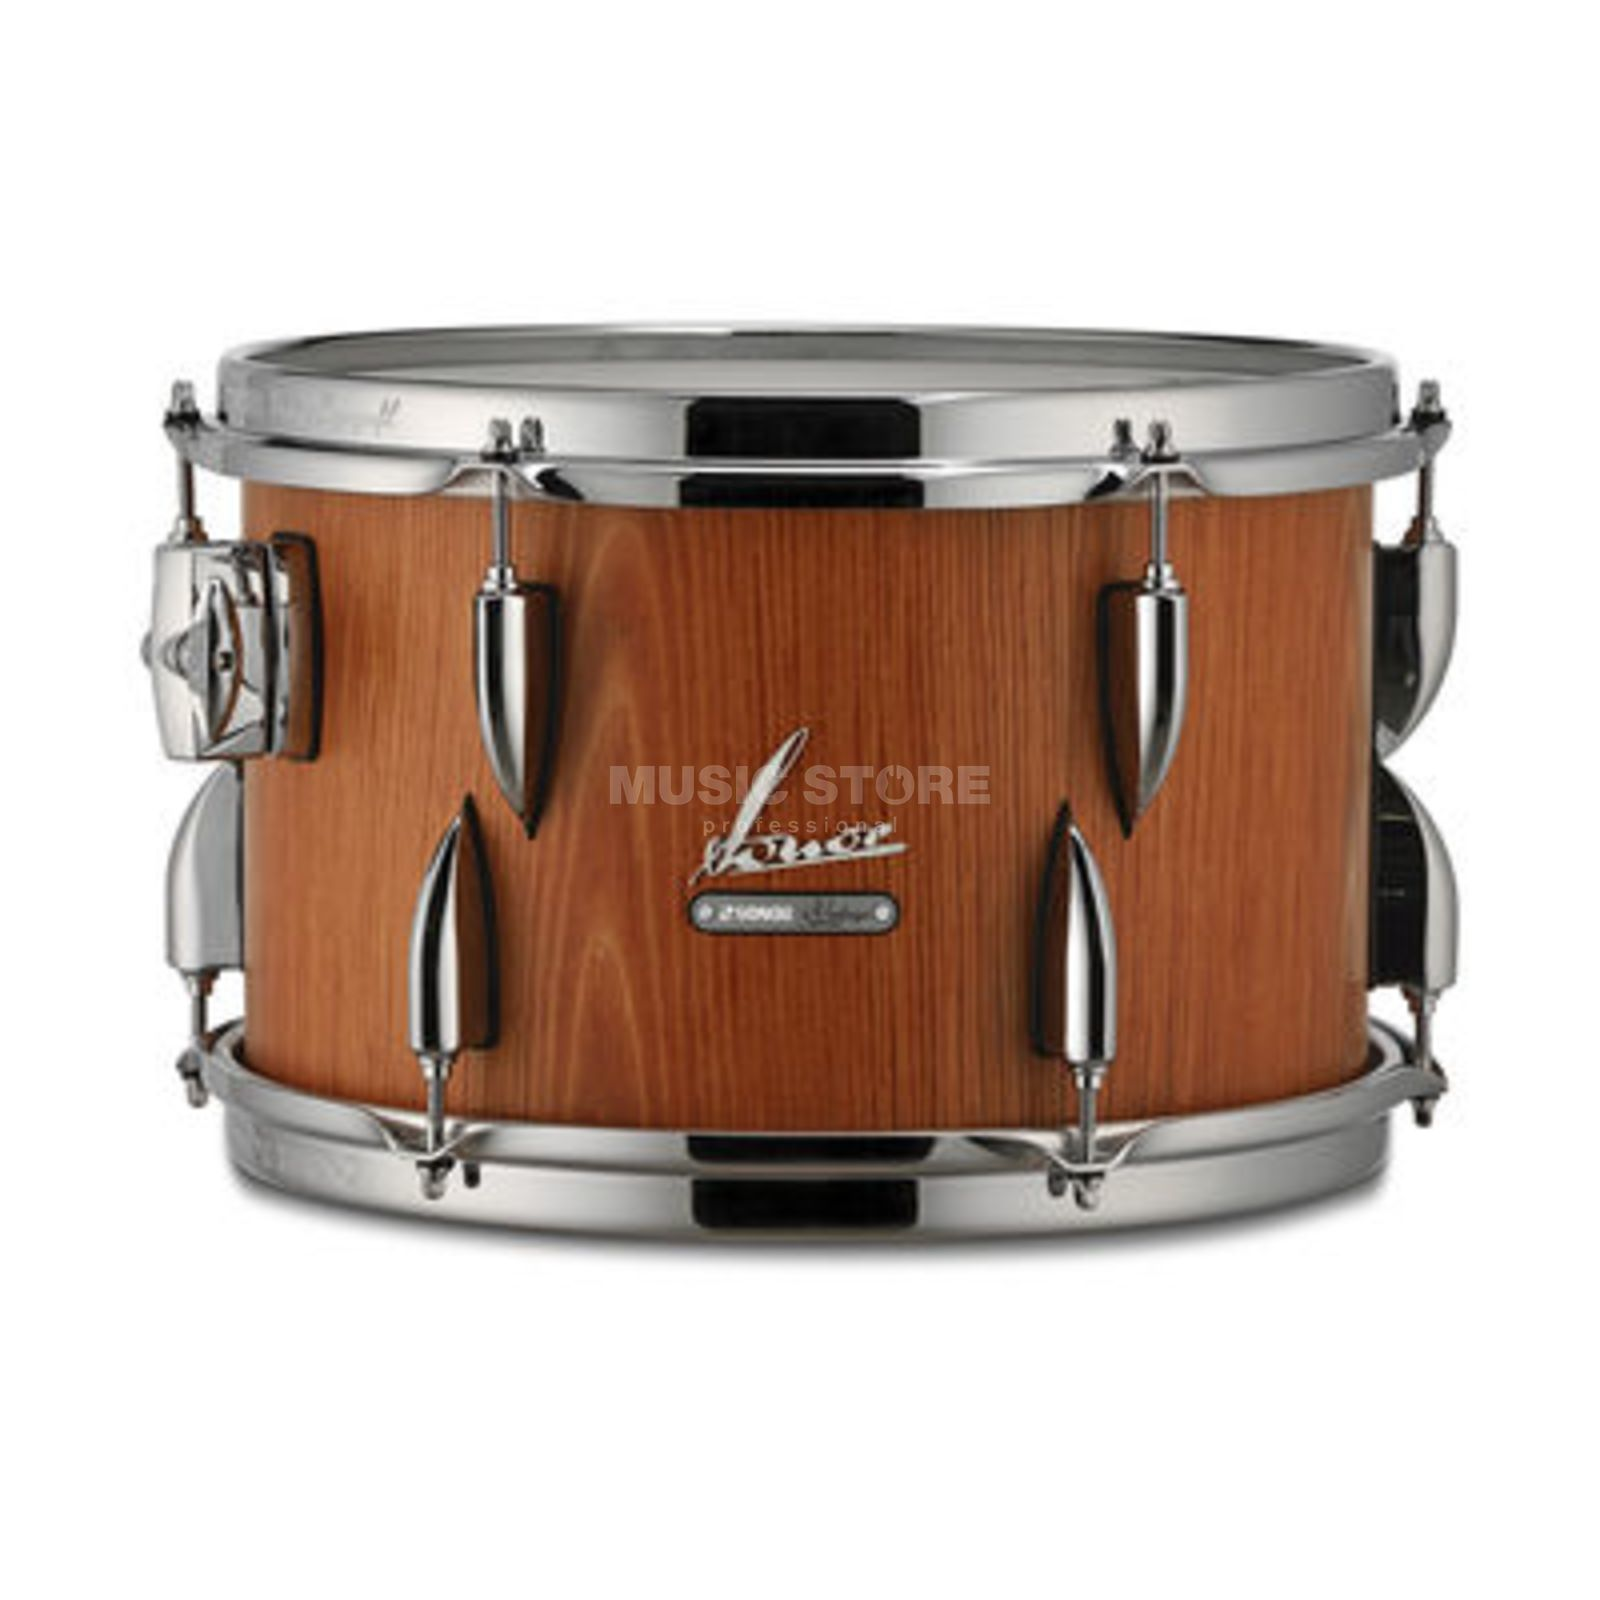 "Sonor Vintage Series Tom 13""x8"", Vintage Natural Produktbild"